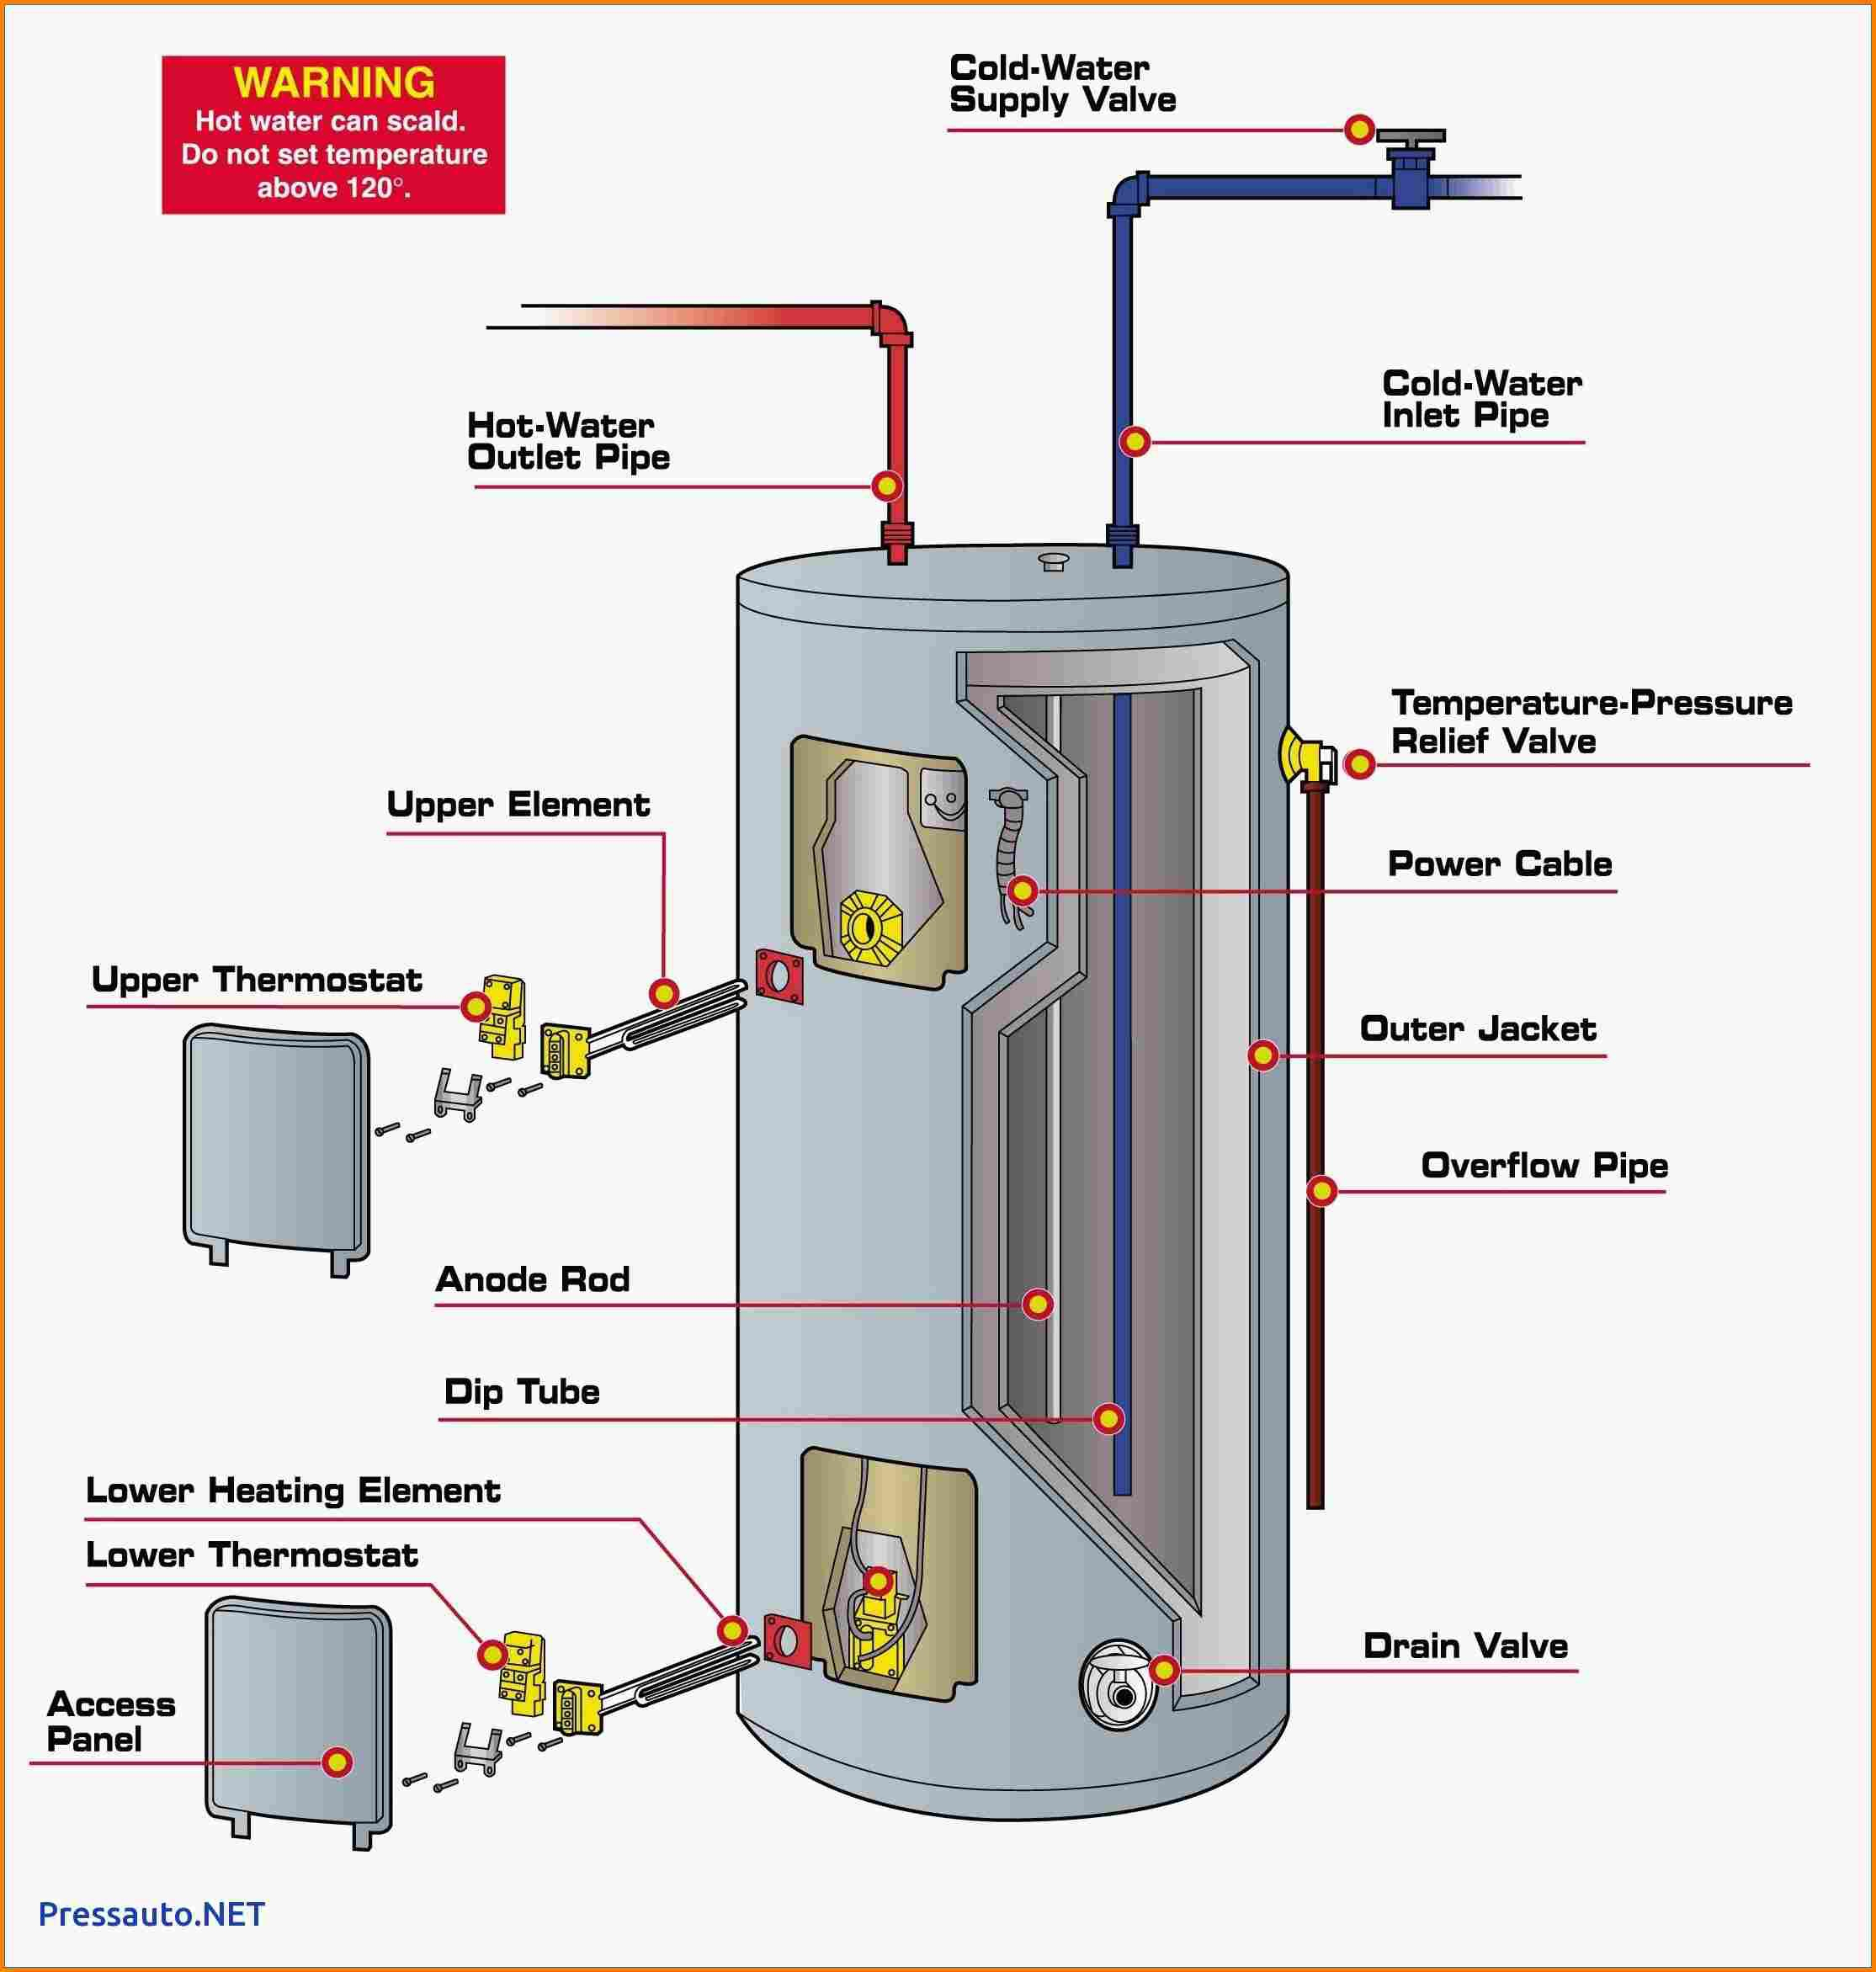 110 Water Heater Thermostat Wiring Diagram   Manual E-Books - Electric Water Heater Thermostat Wiring Diagram